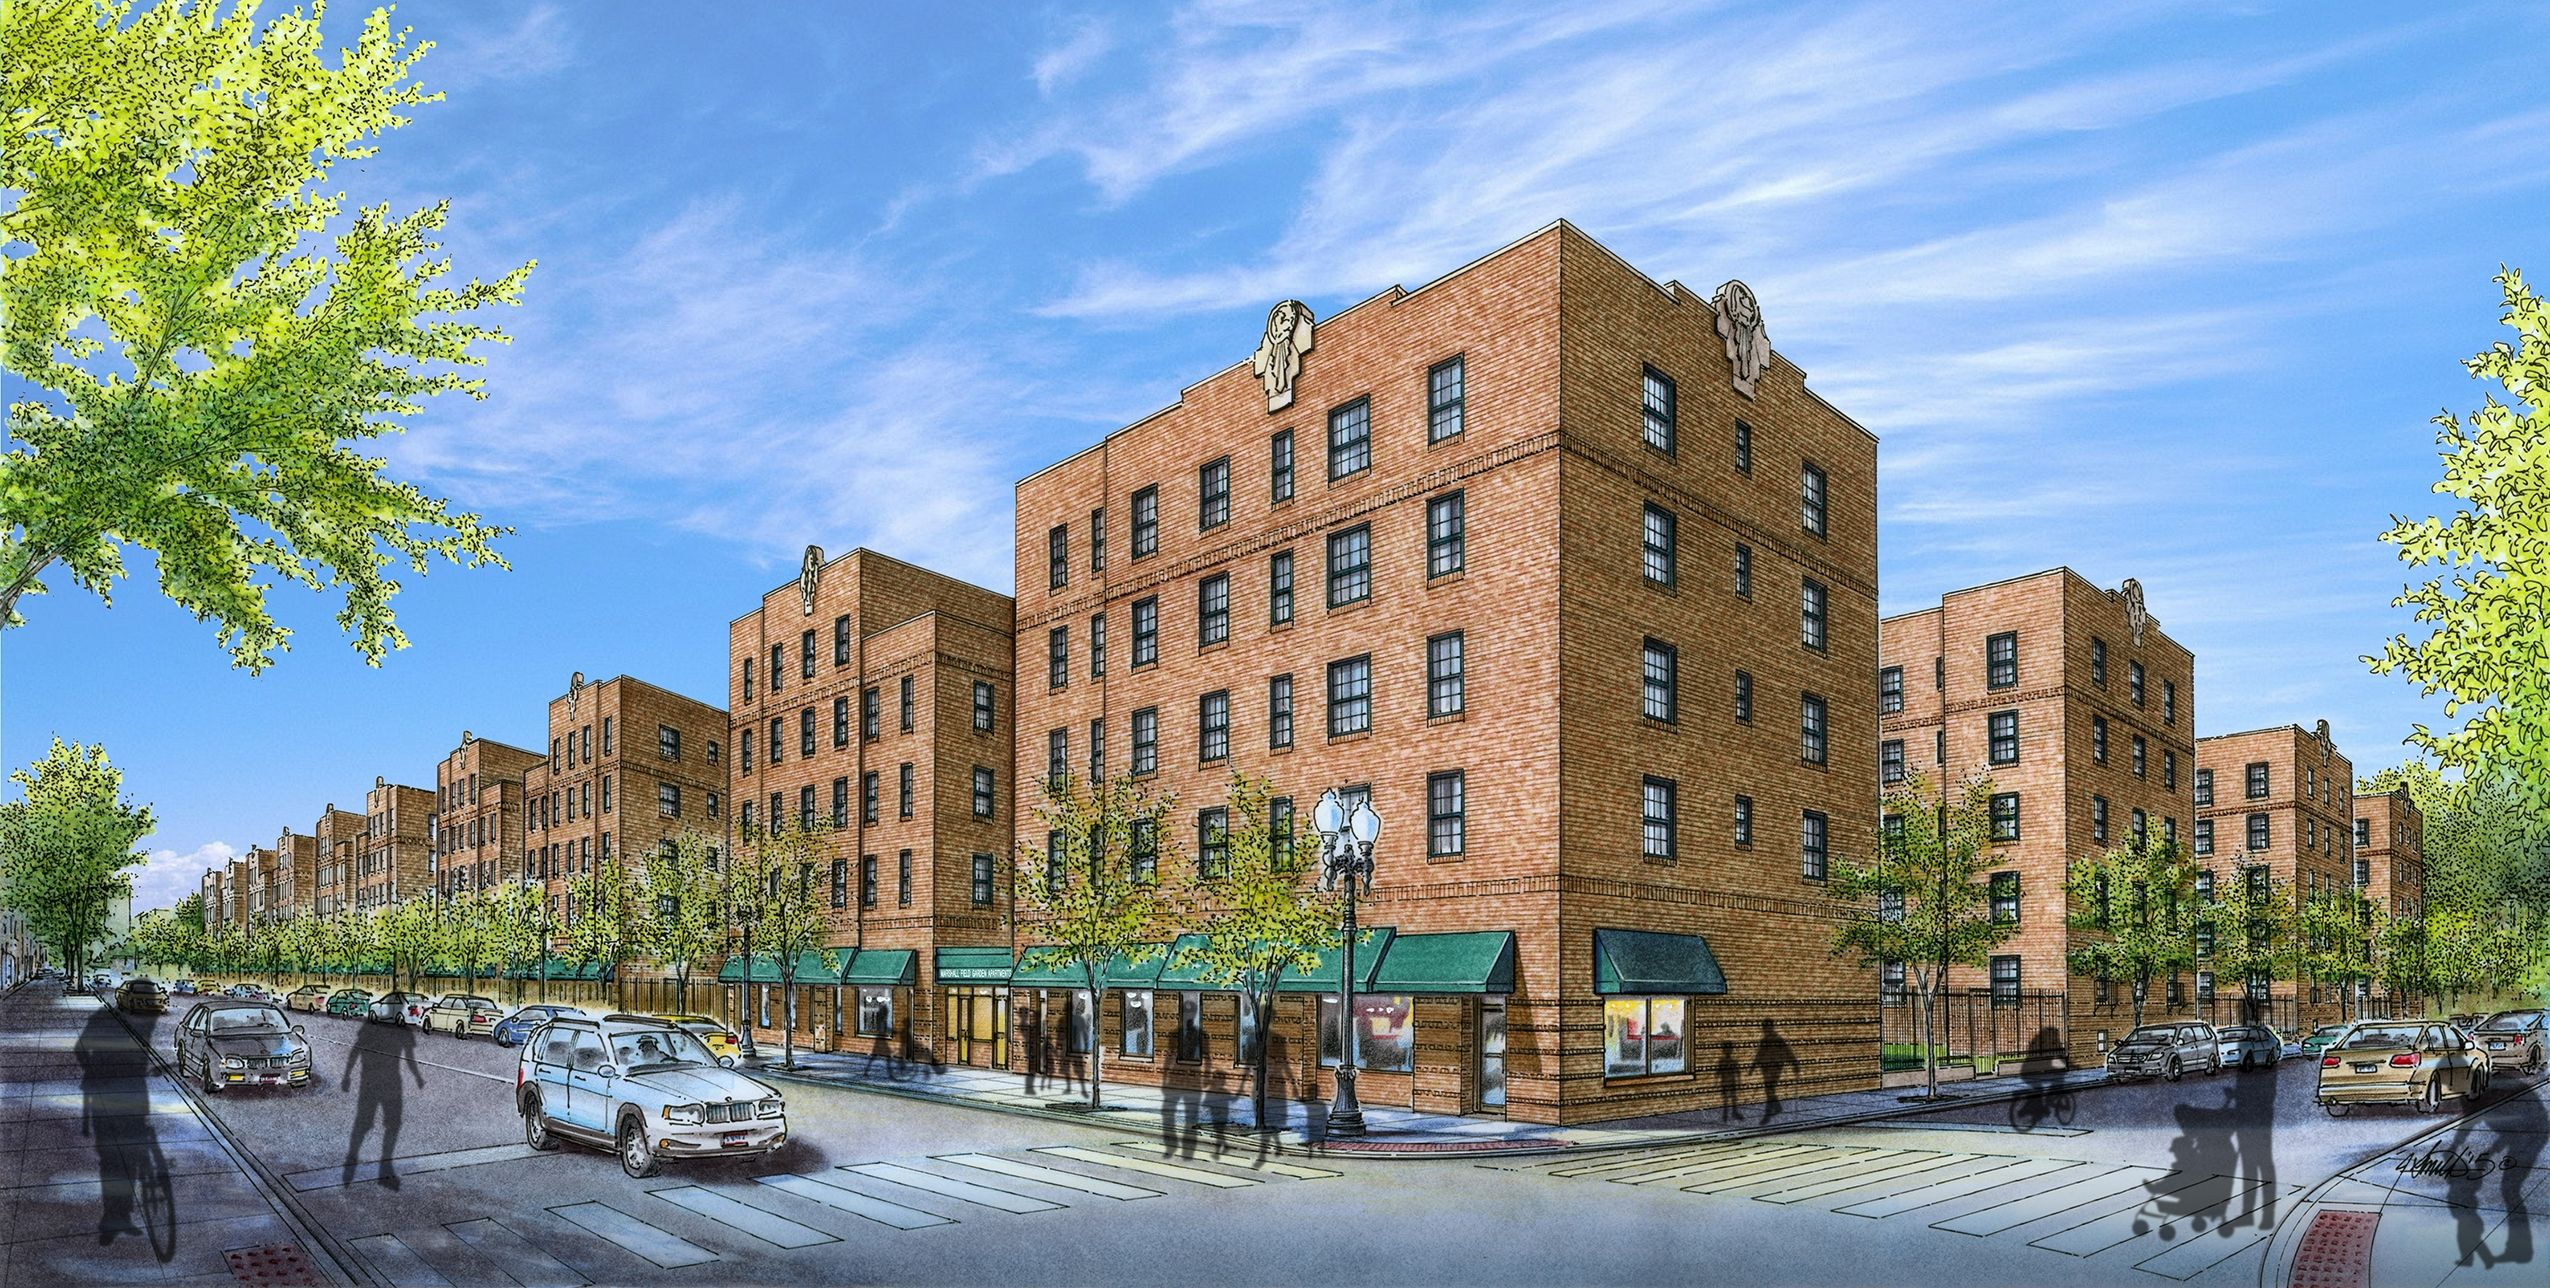 Concept Renderings At The Marshall Field Garden Apartments